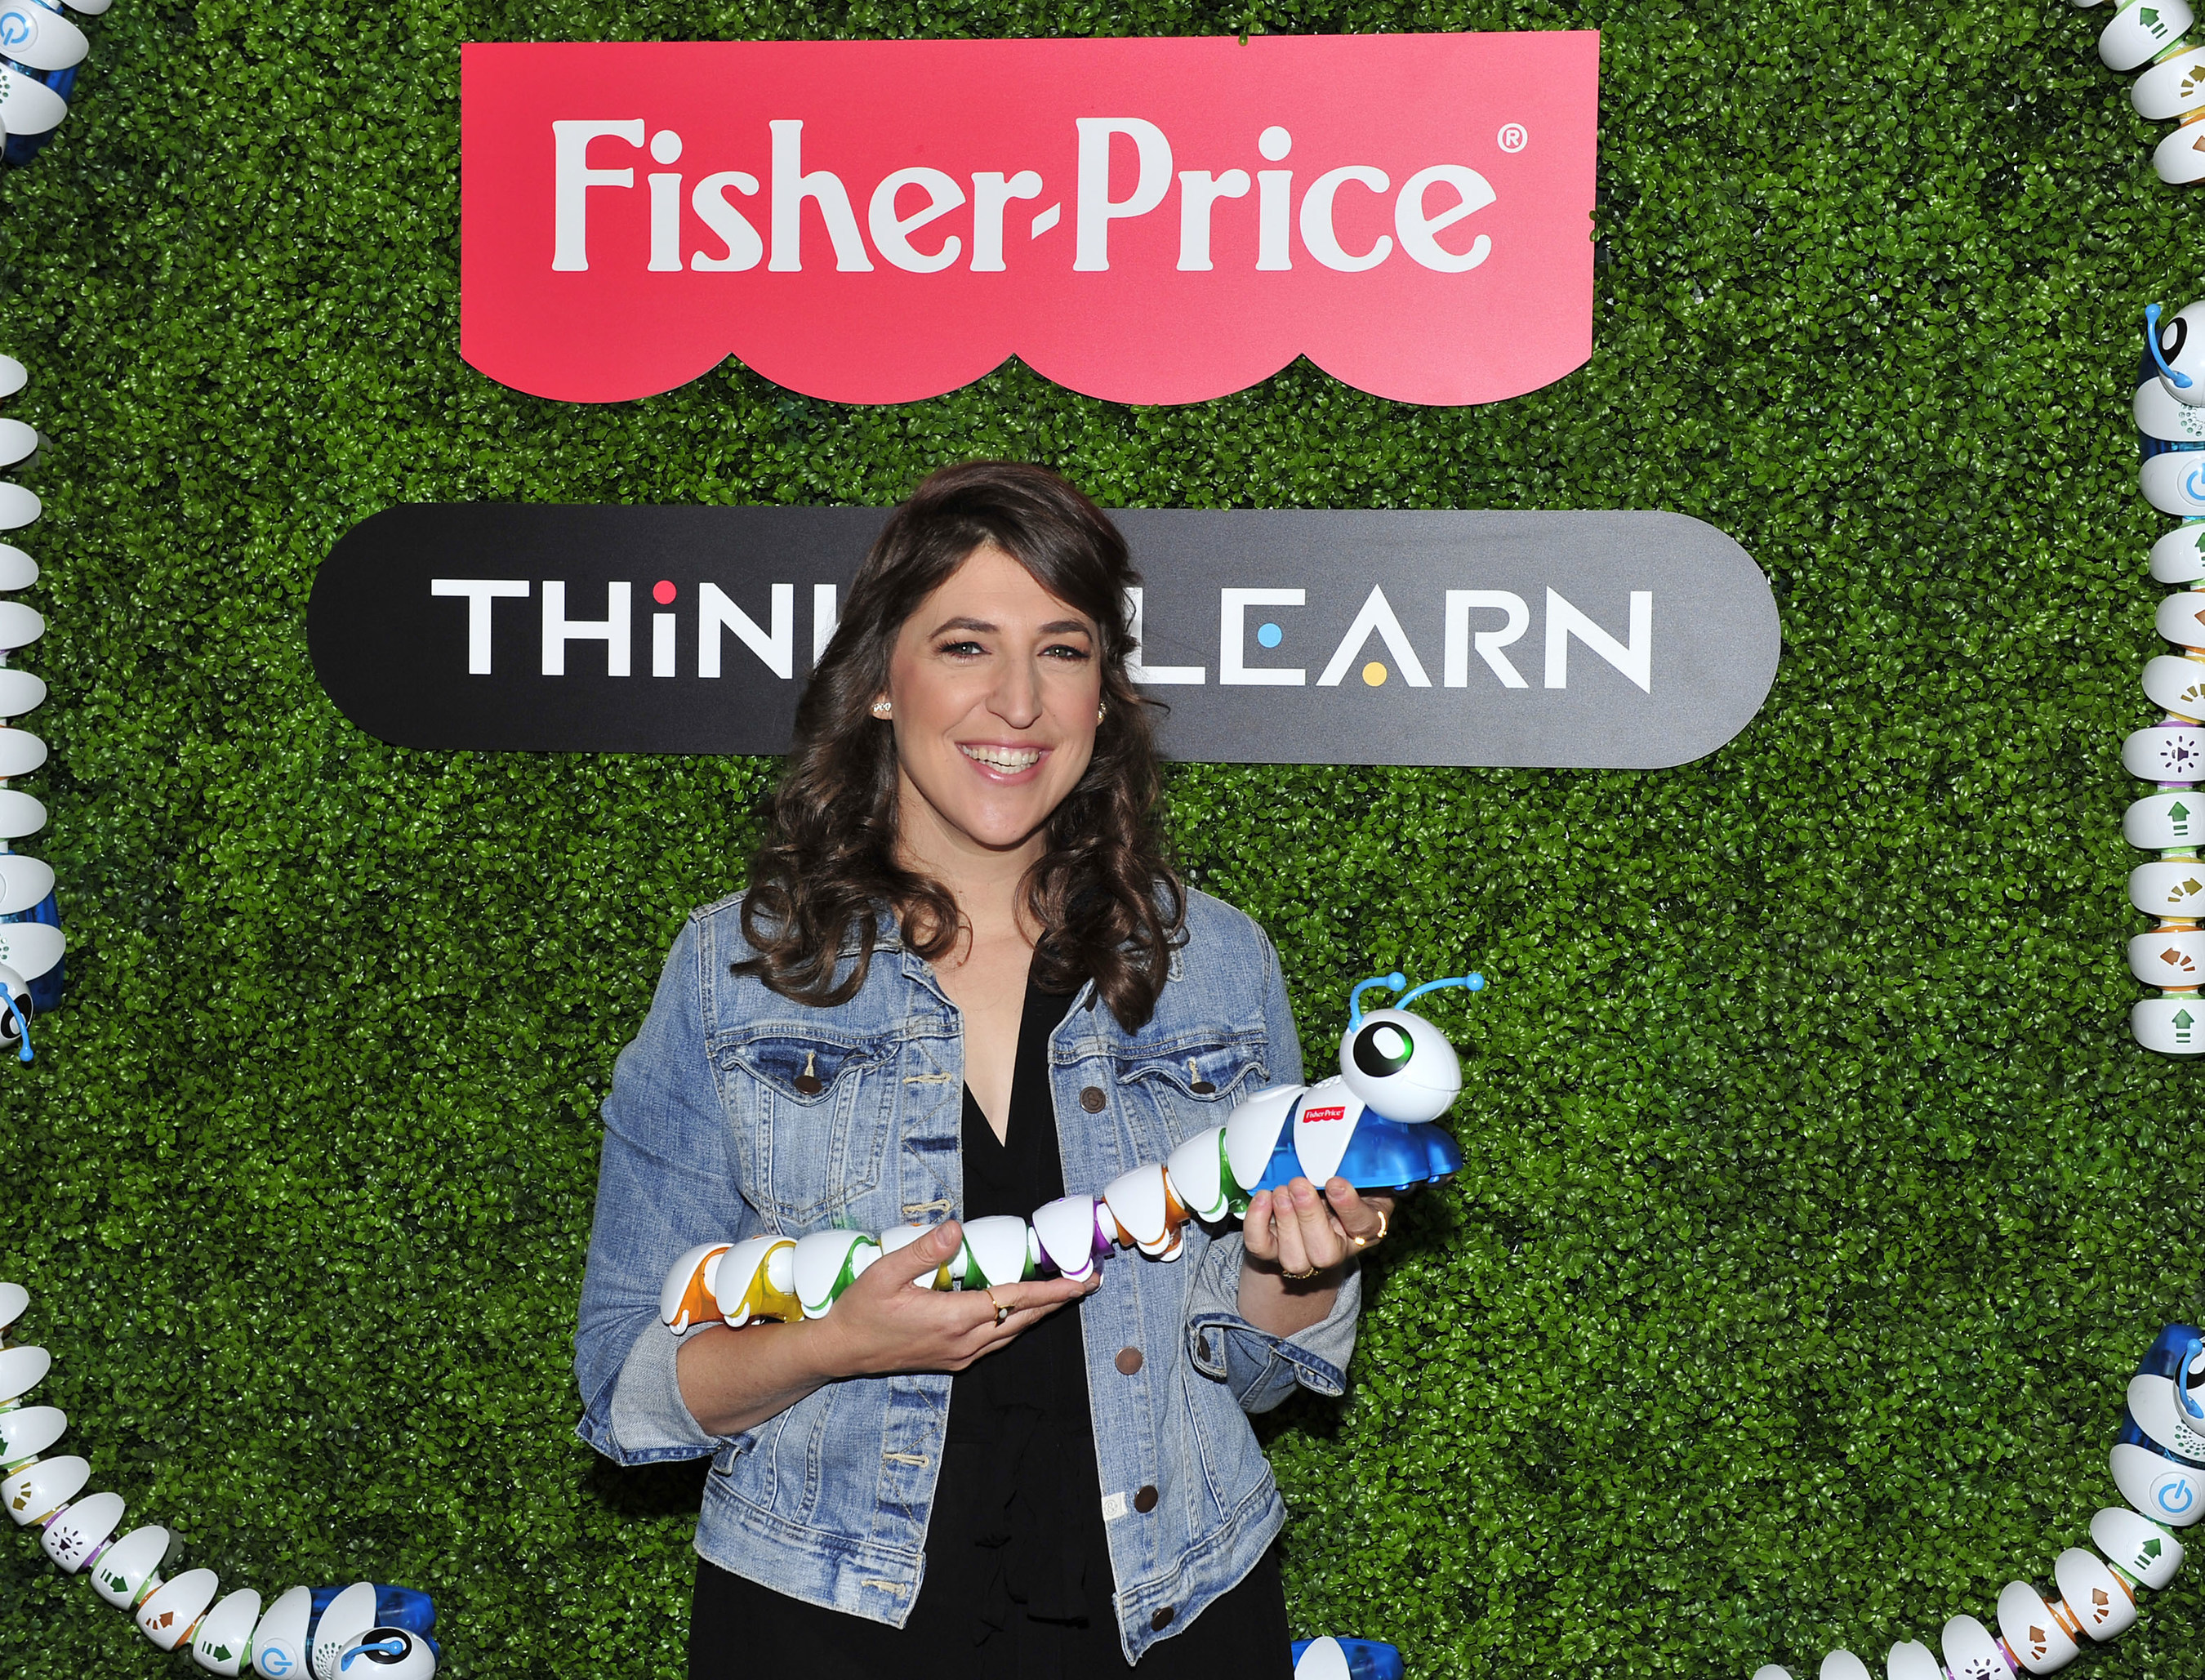 September 27, 2016 - STEM advocate, actress, and mom Mayim Bialik plays with the Think & Learn Code-a-pillar at the Fisher-Price Think-a-Thon event in Los Angeles.  The Think & Learn line encourages critical thinking skills that preschoolers need for the future, through active play.